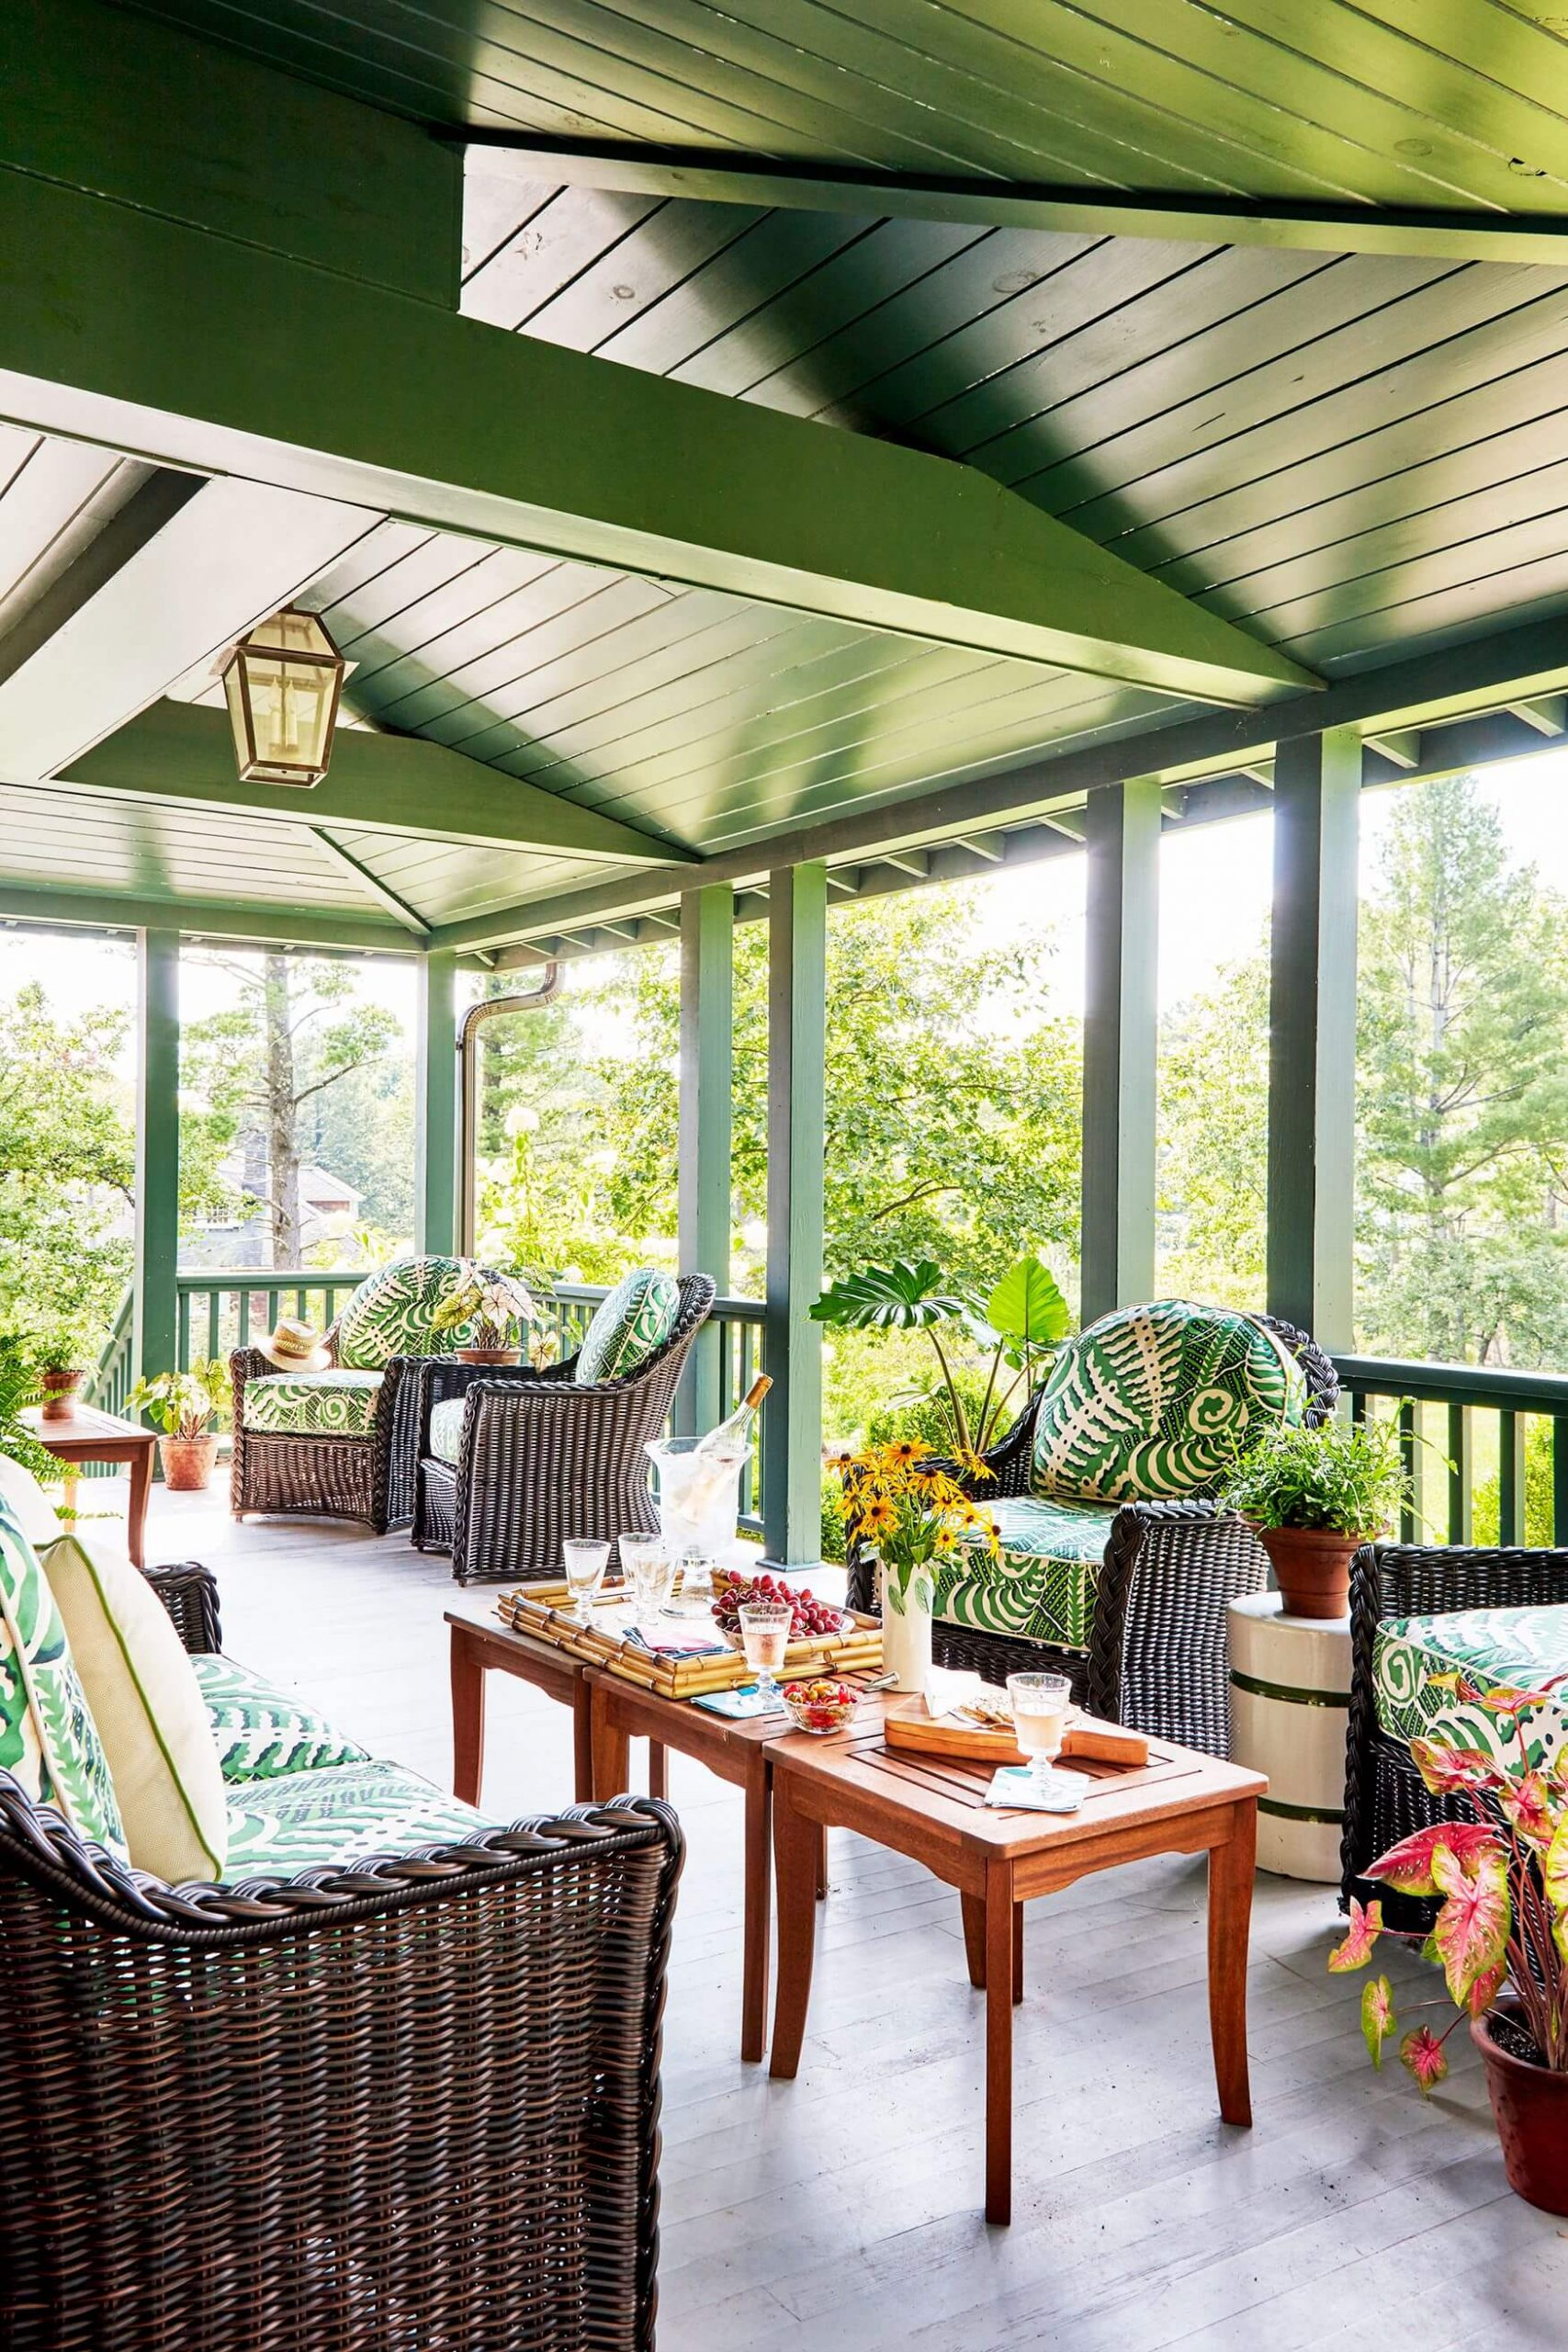 MULTIPLE FRONT PORCH SEATING AREA